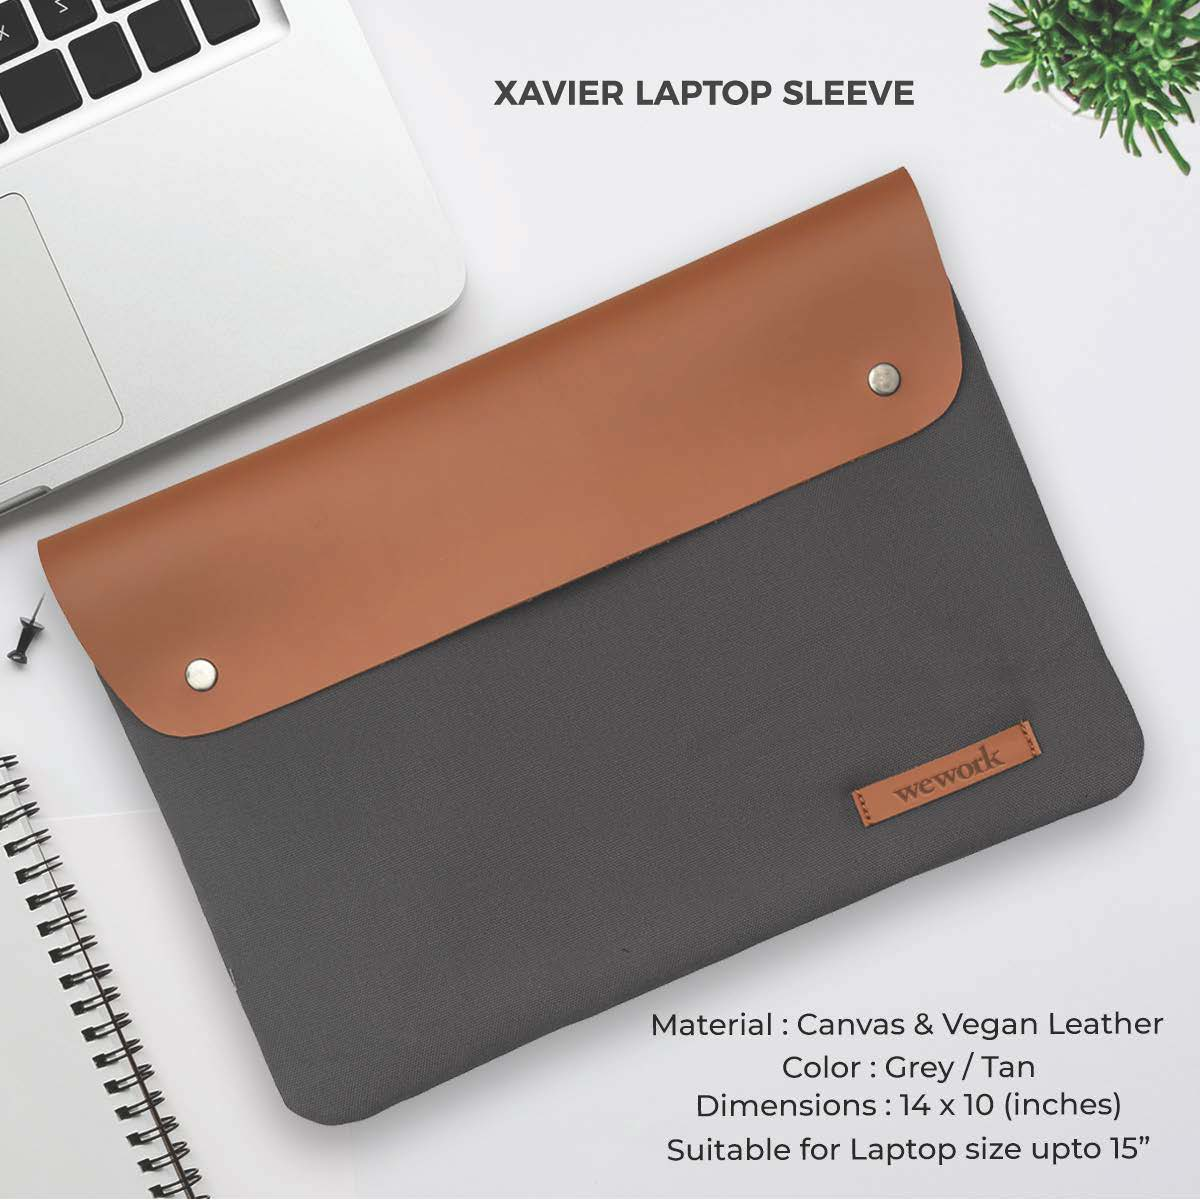 Xavier Laptop Sleeve - Grey & Tan